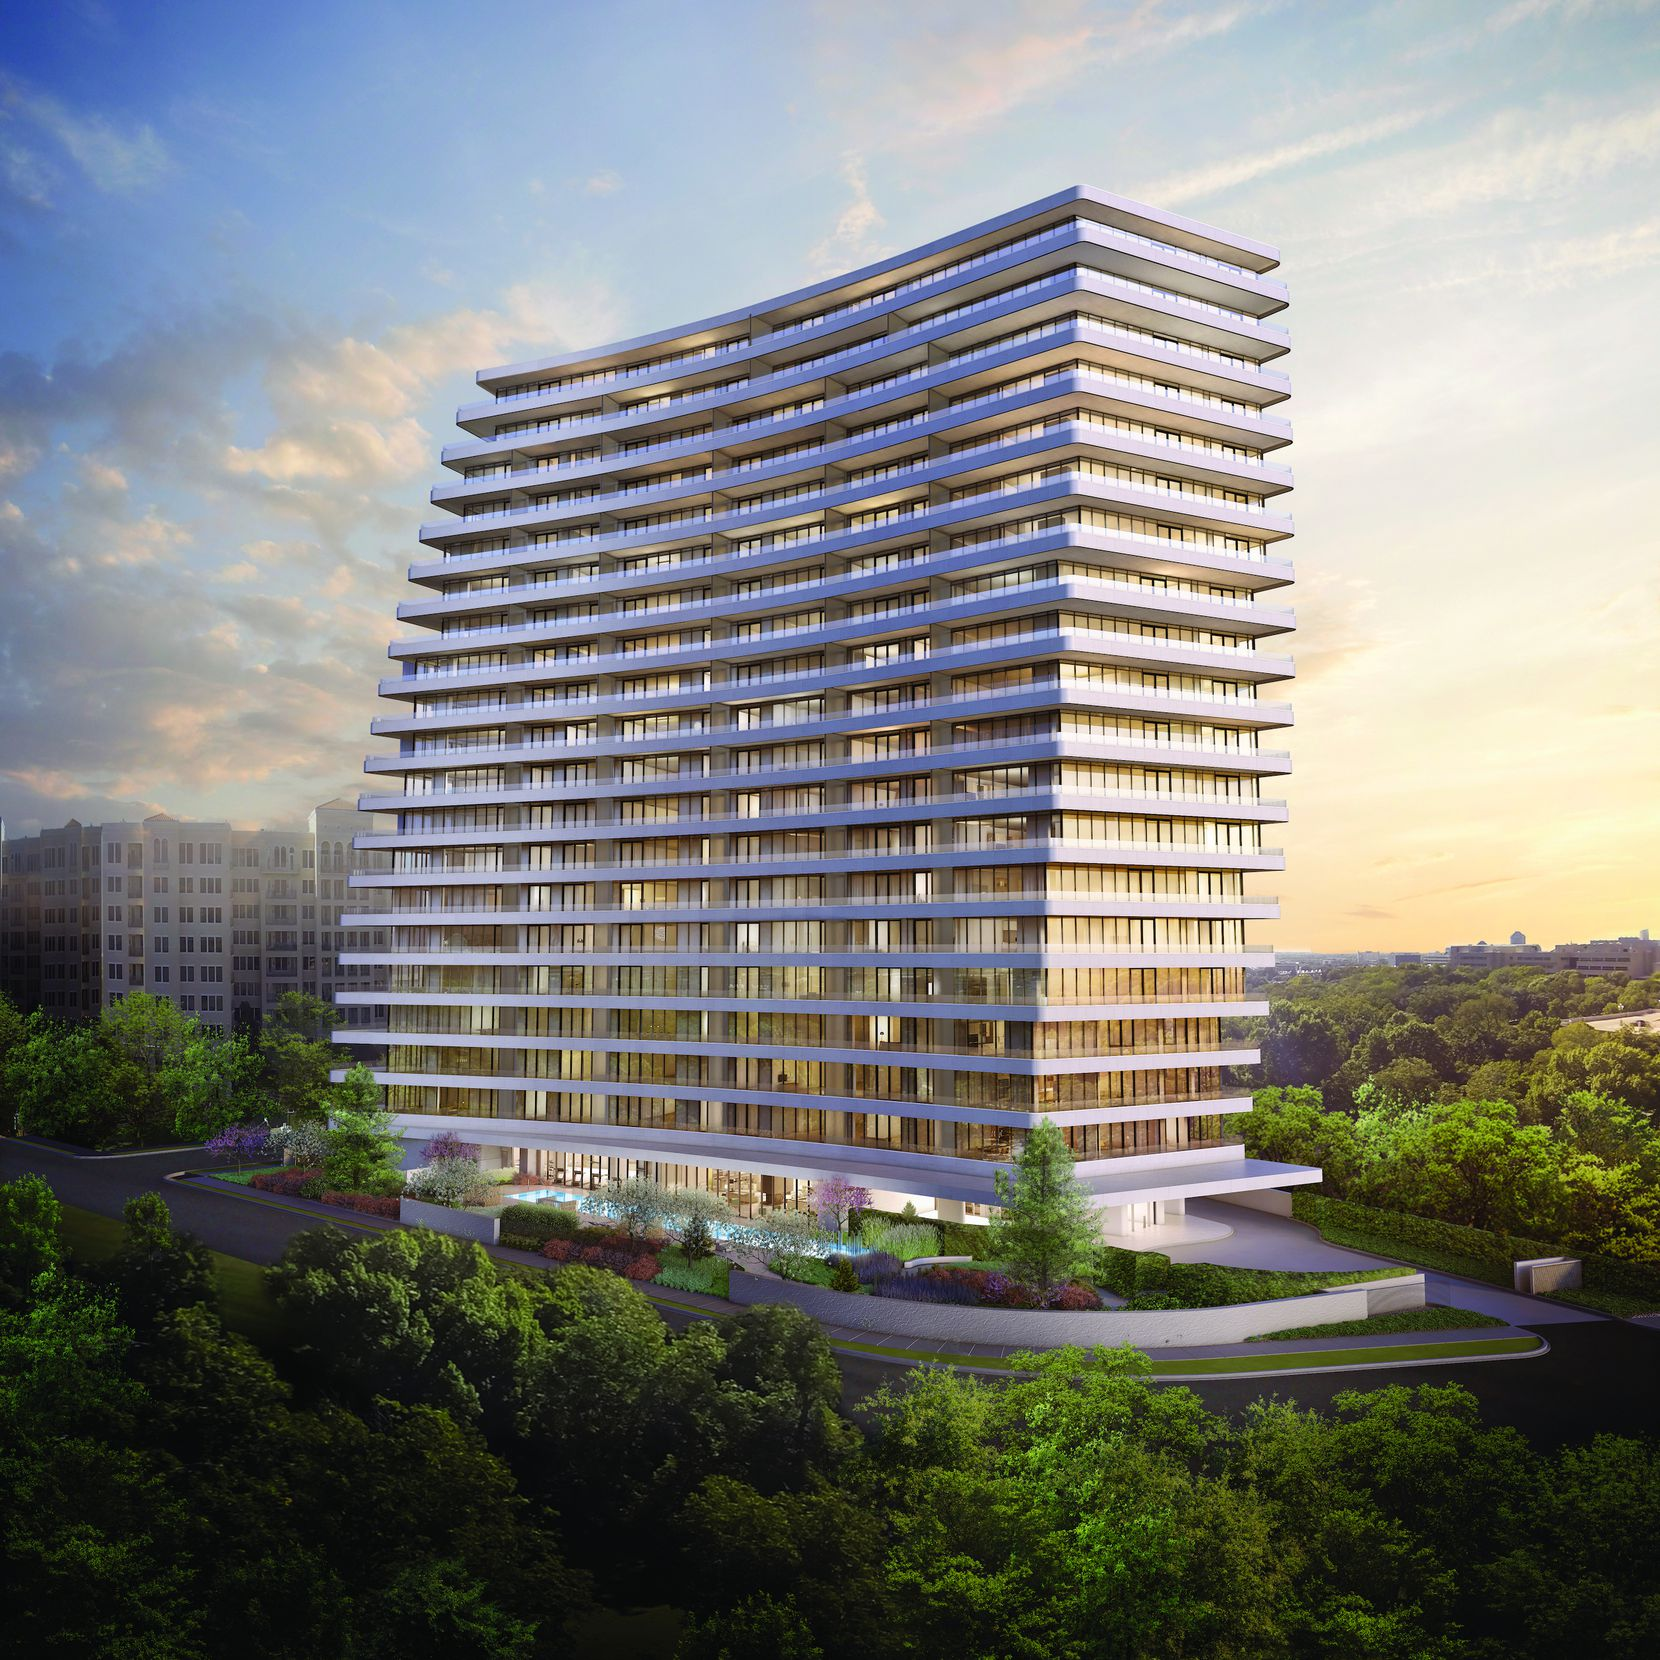 Ltd Edition | No. 2505 was the condo tower Great Gulf Homes had planned at 2505 Turtle Creek Boulevard.